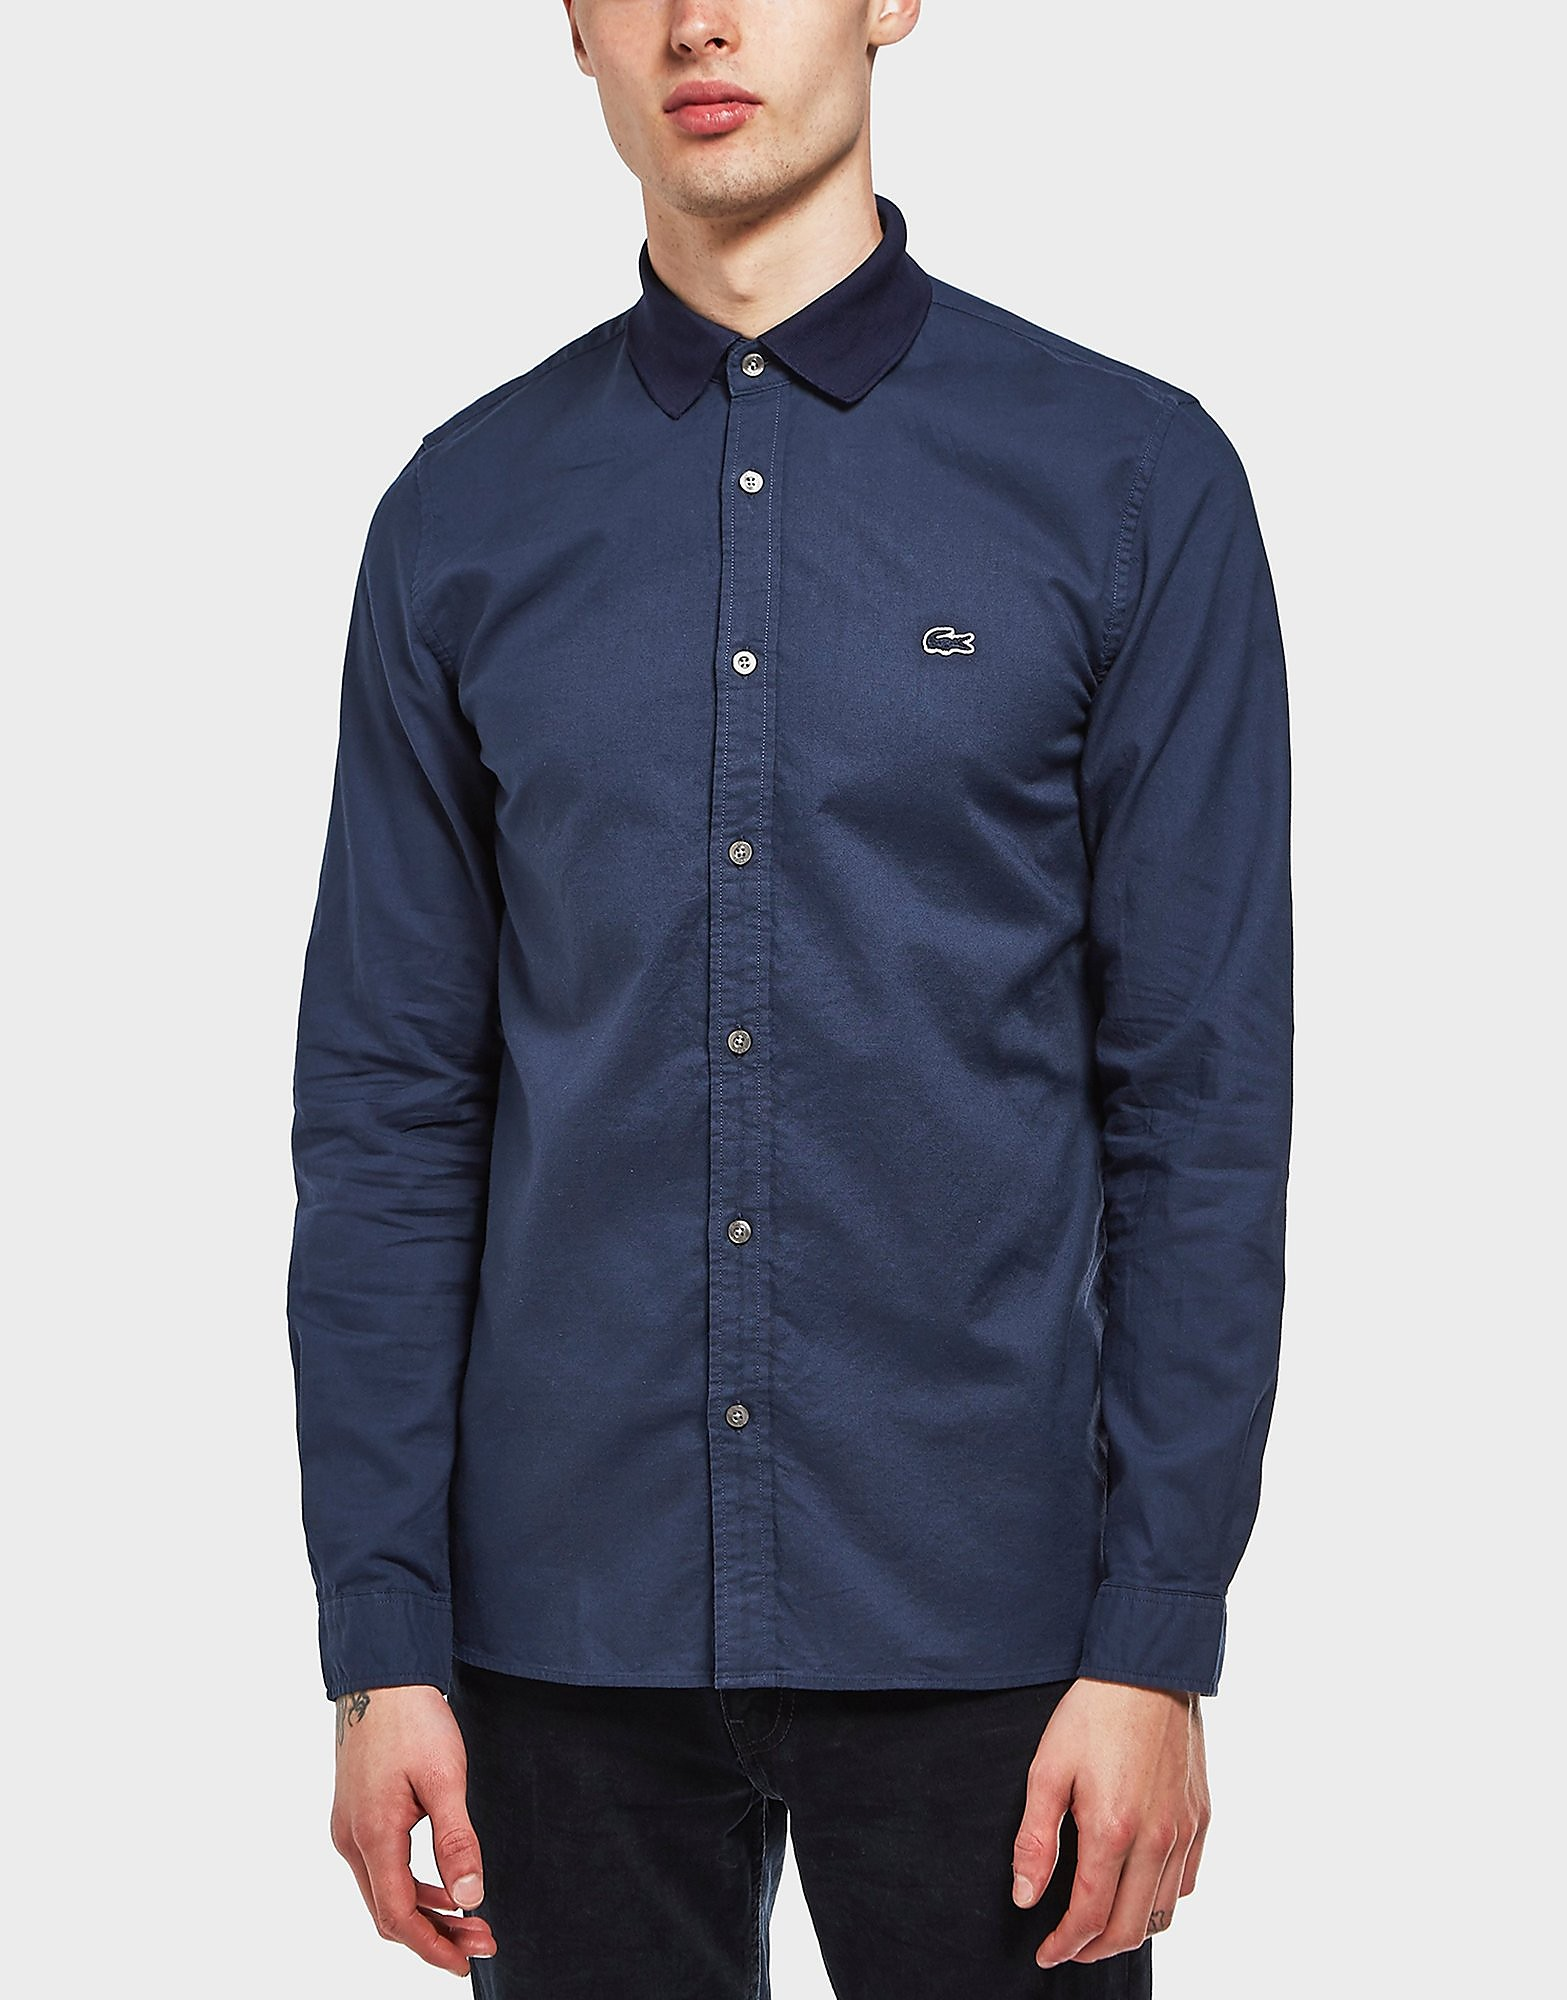 Lacoste Fabric Collar Long Sleeve Shirt